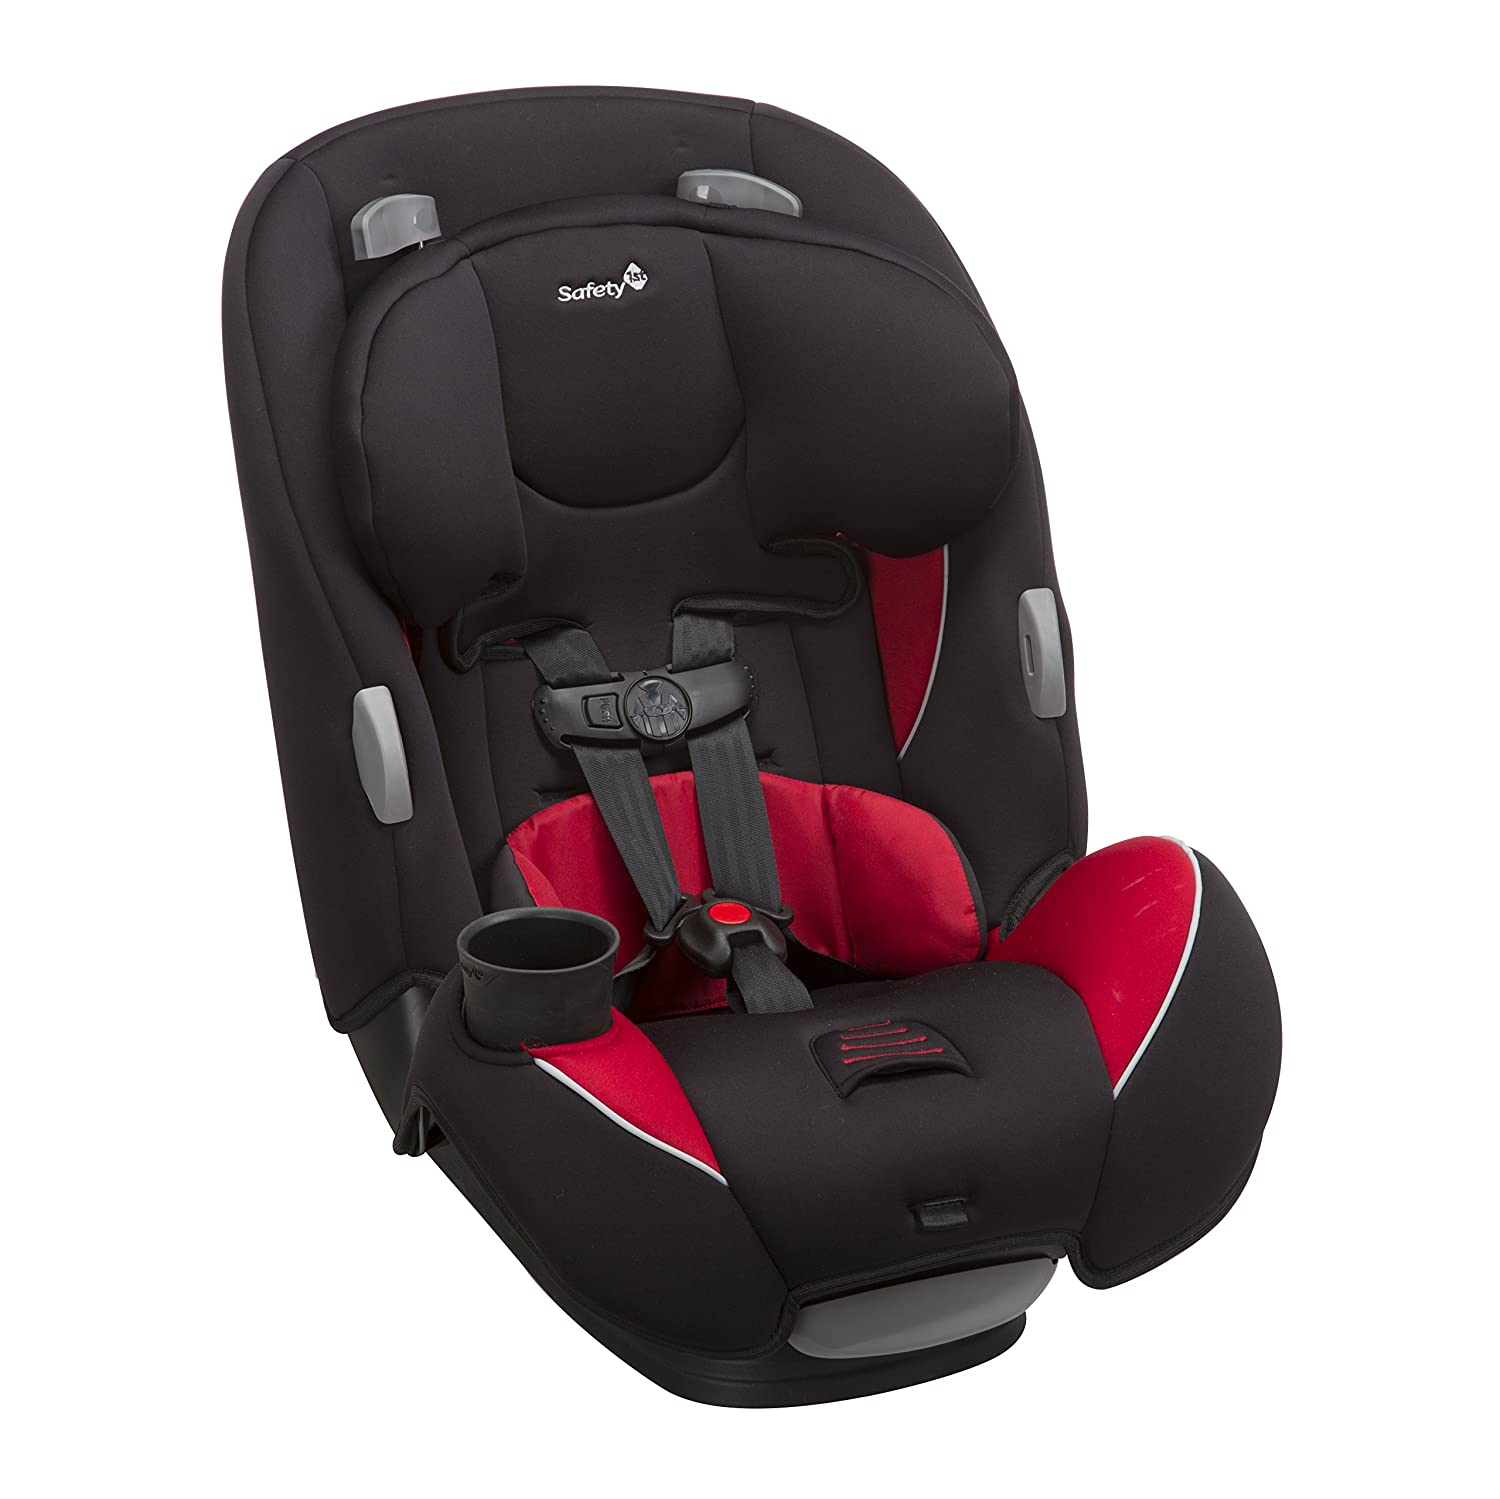 Amazon.com : Safety 1st Continuum 3-in-1 Car Seat, Chili Pepper : Baby